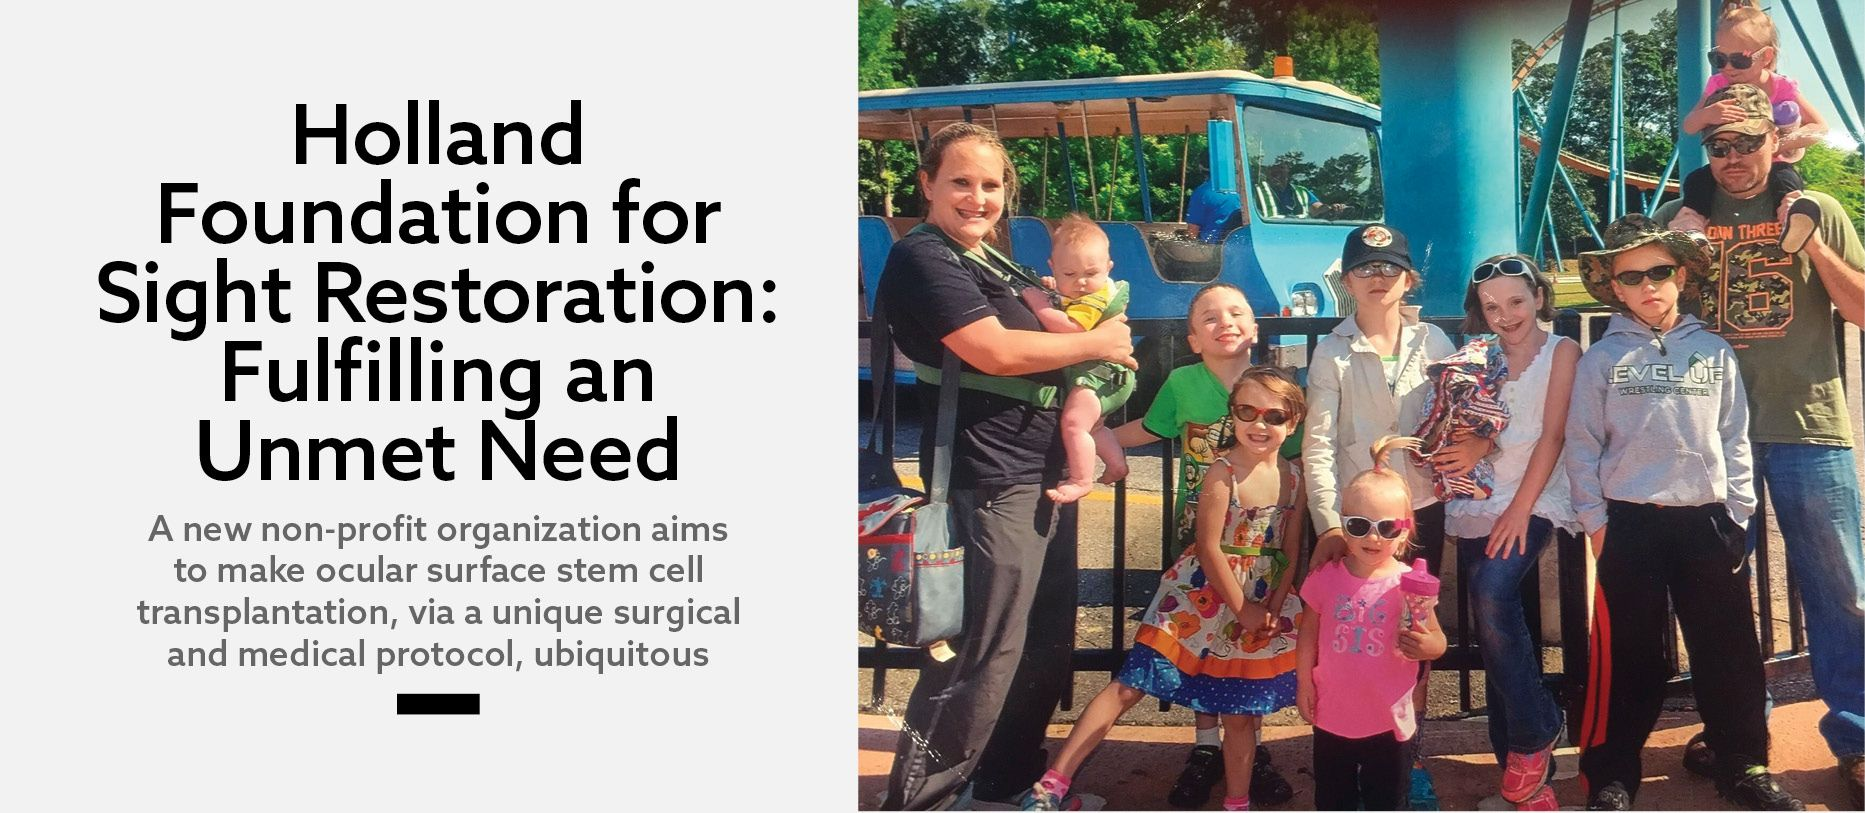 Holland Foundation for Sight Restoration: Fulfilling an Unmet Need